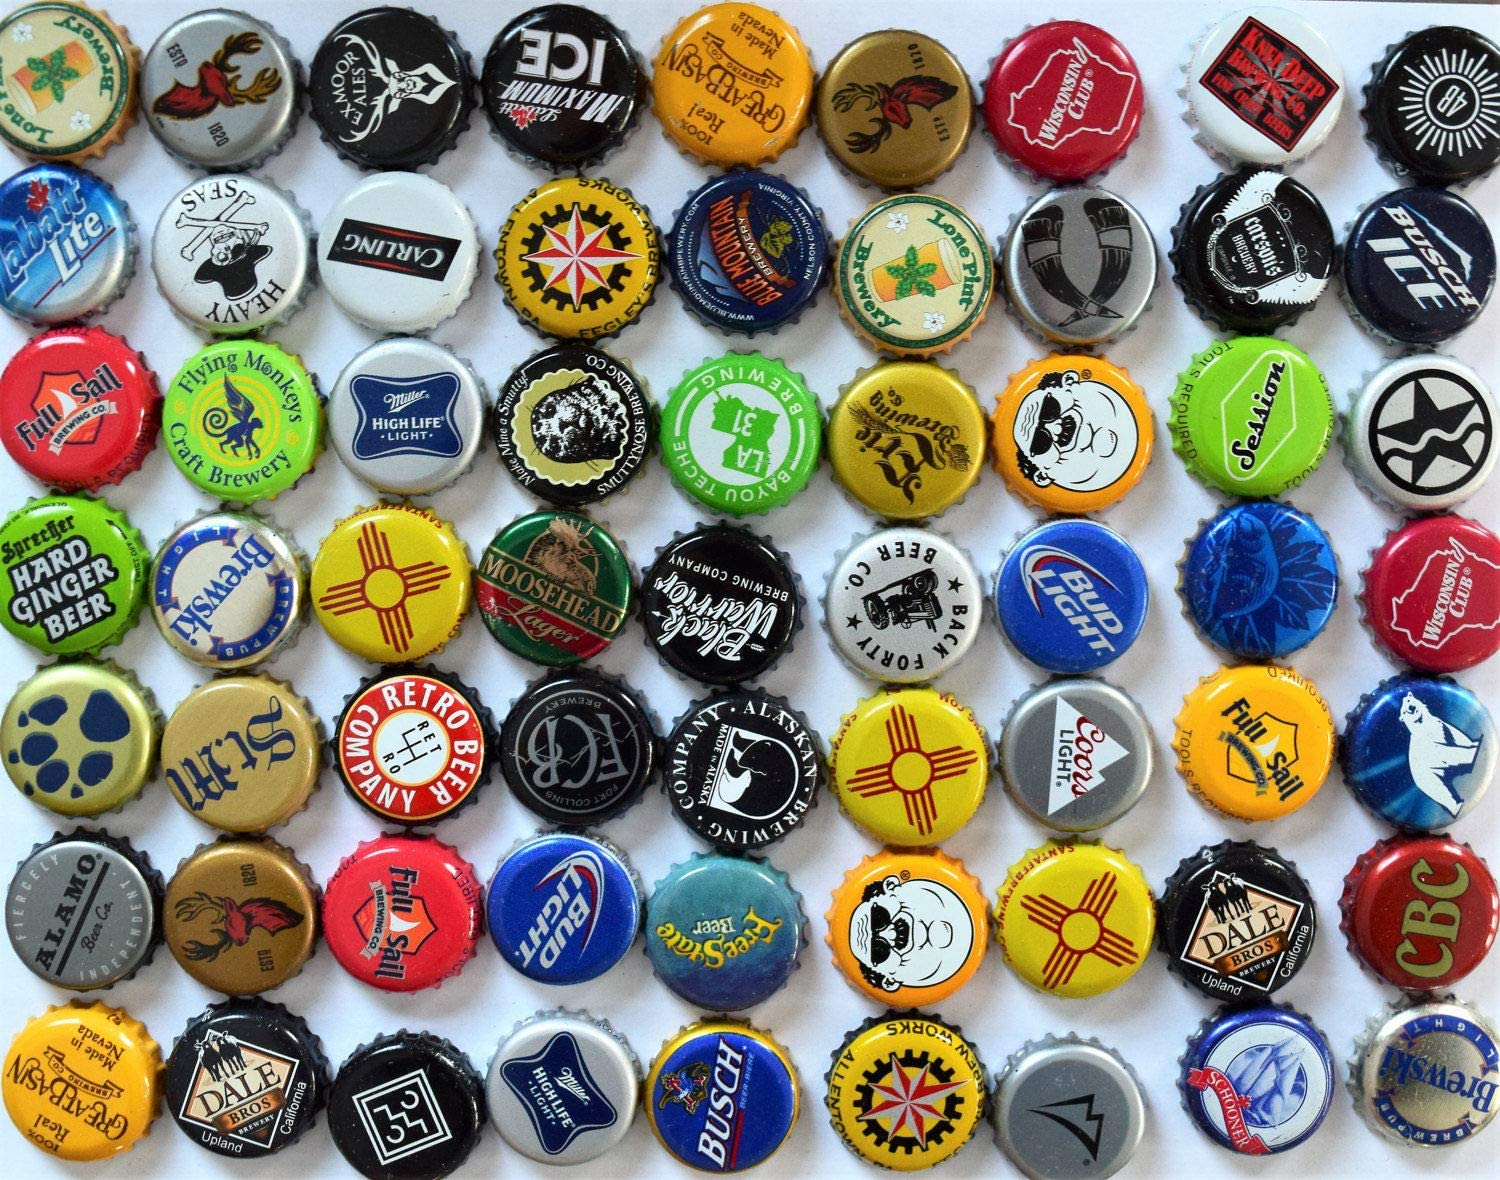 100 Assorted New item Beer Bottle Caps Craft Supplies for Challenge the lowest price Lot Cap